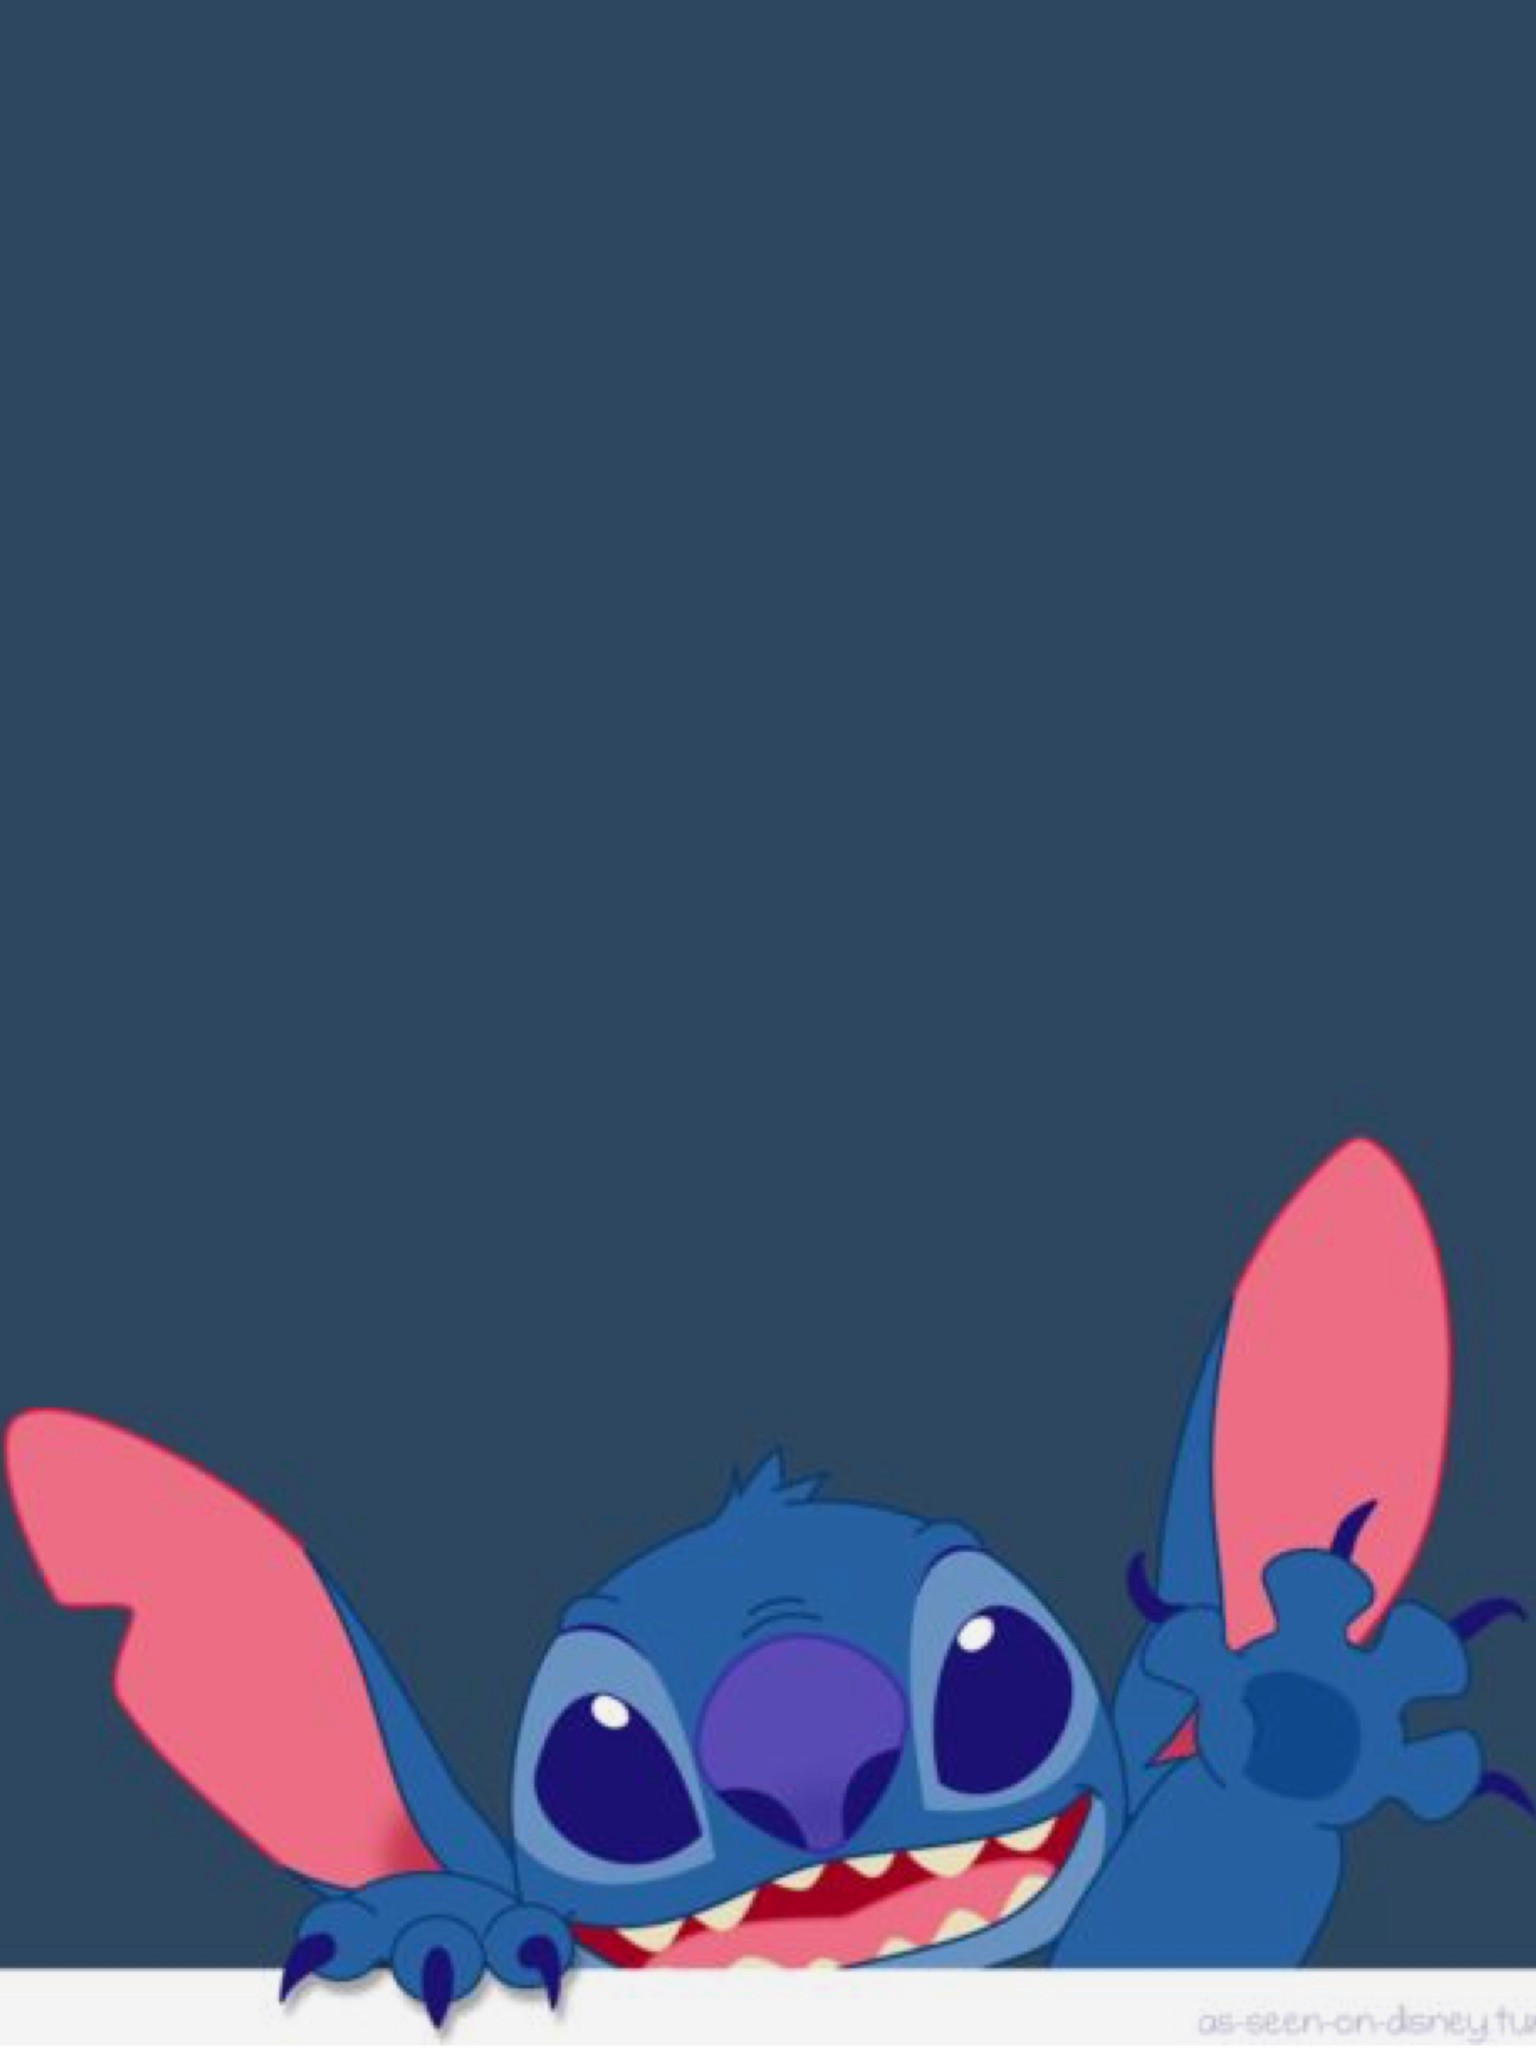 Free Download Lilo And Stitch Wallpapers 67 Images 1536x2048 For